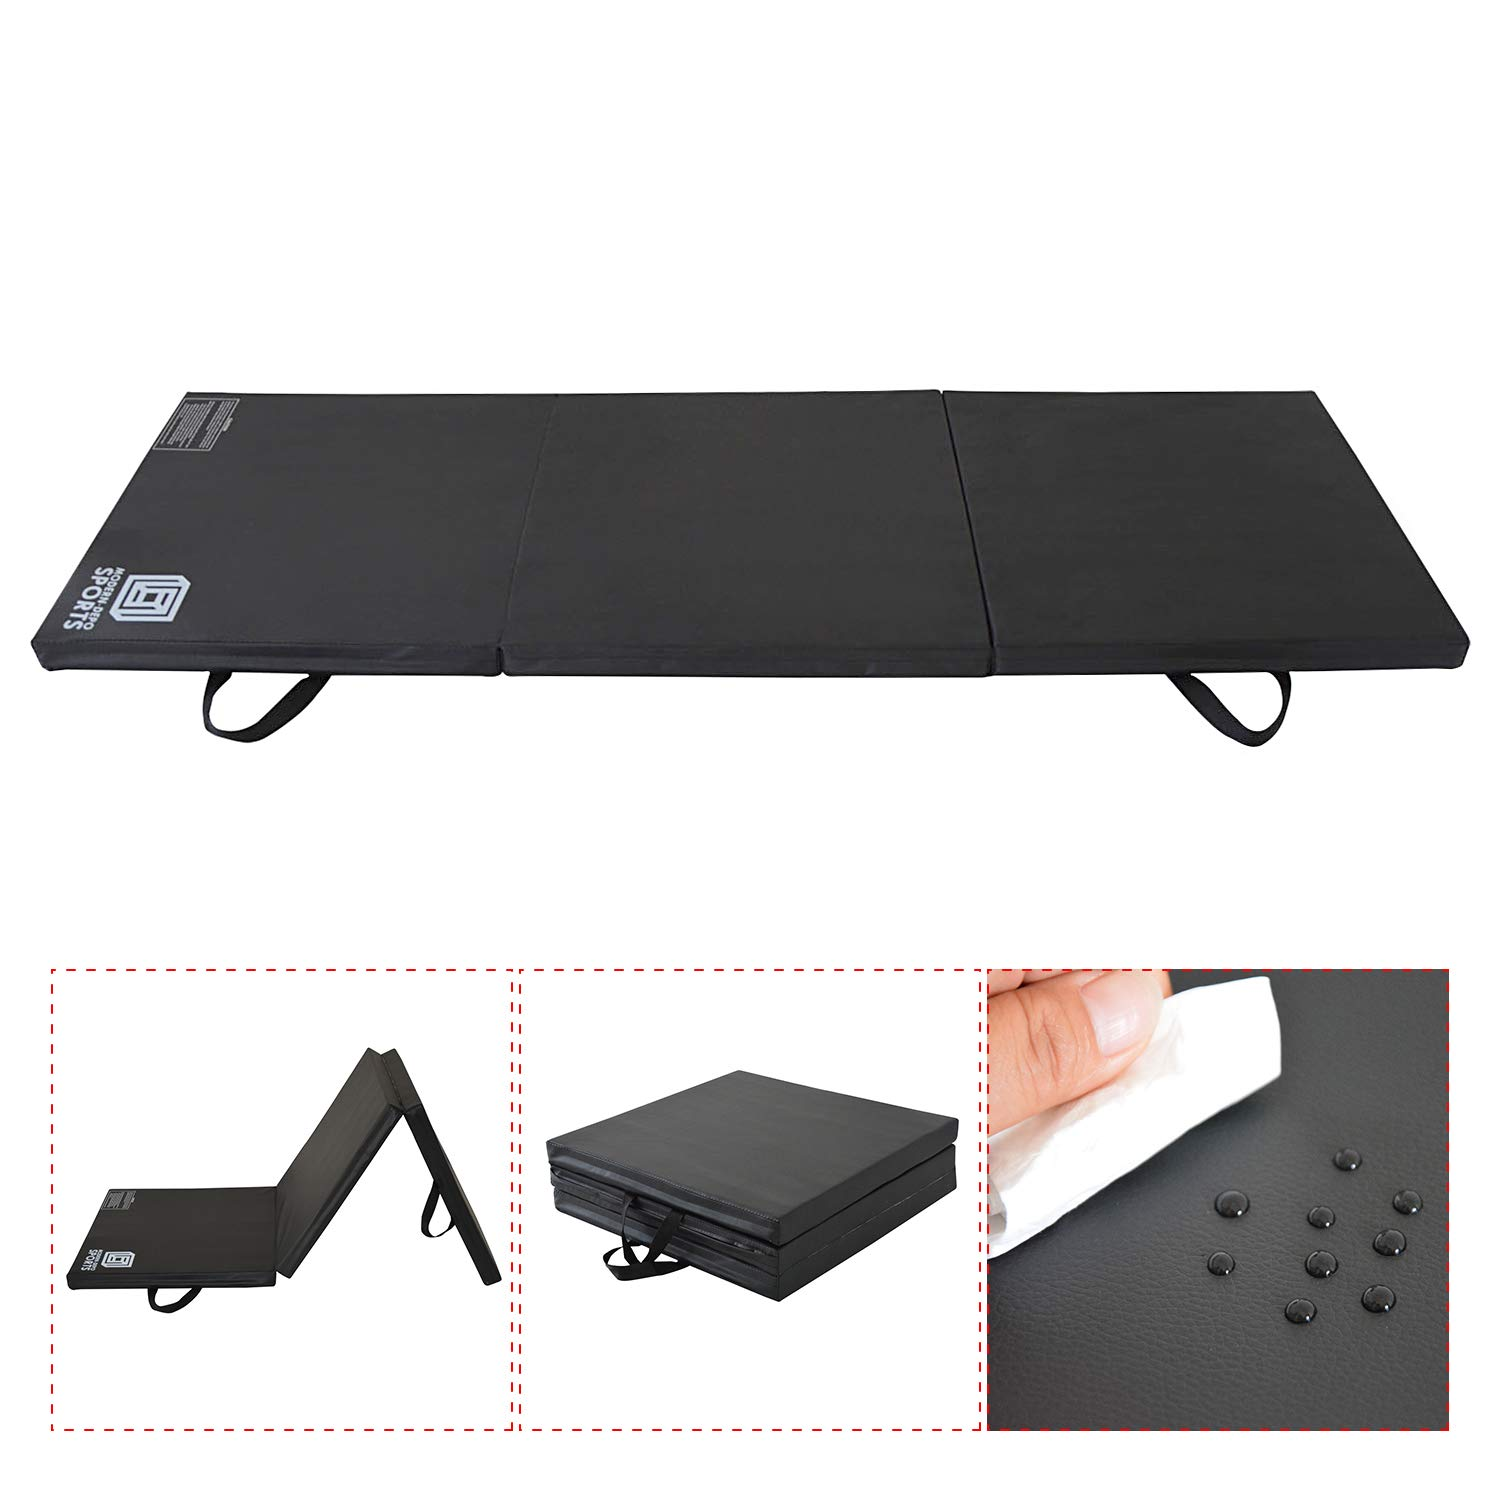 Modern-Depo Gymnastics Mat Tri-Fold 6'X2'X2 Thick with Handle, Waterproof Cover, 100% EPE Core (Black)